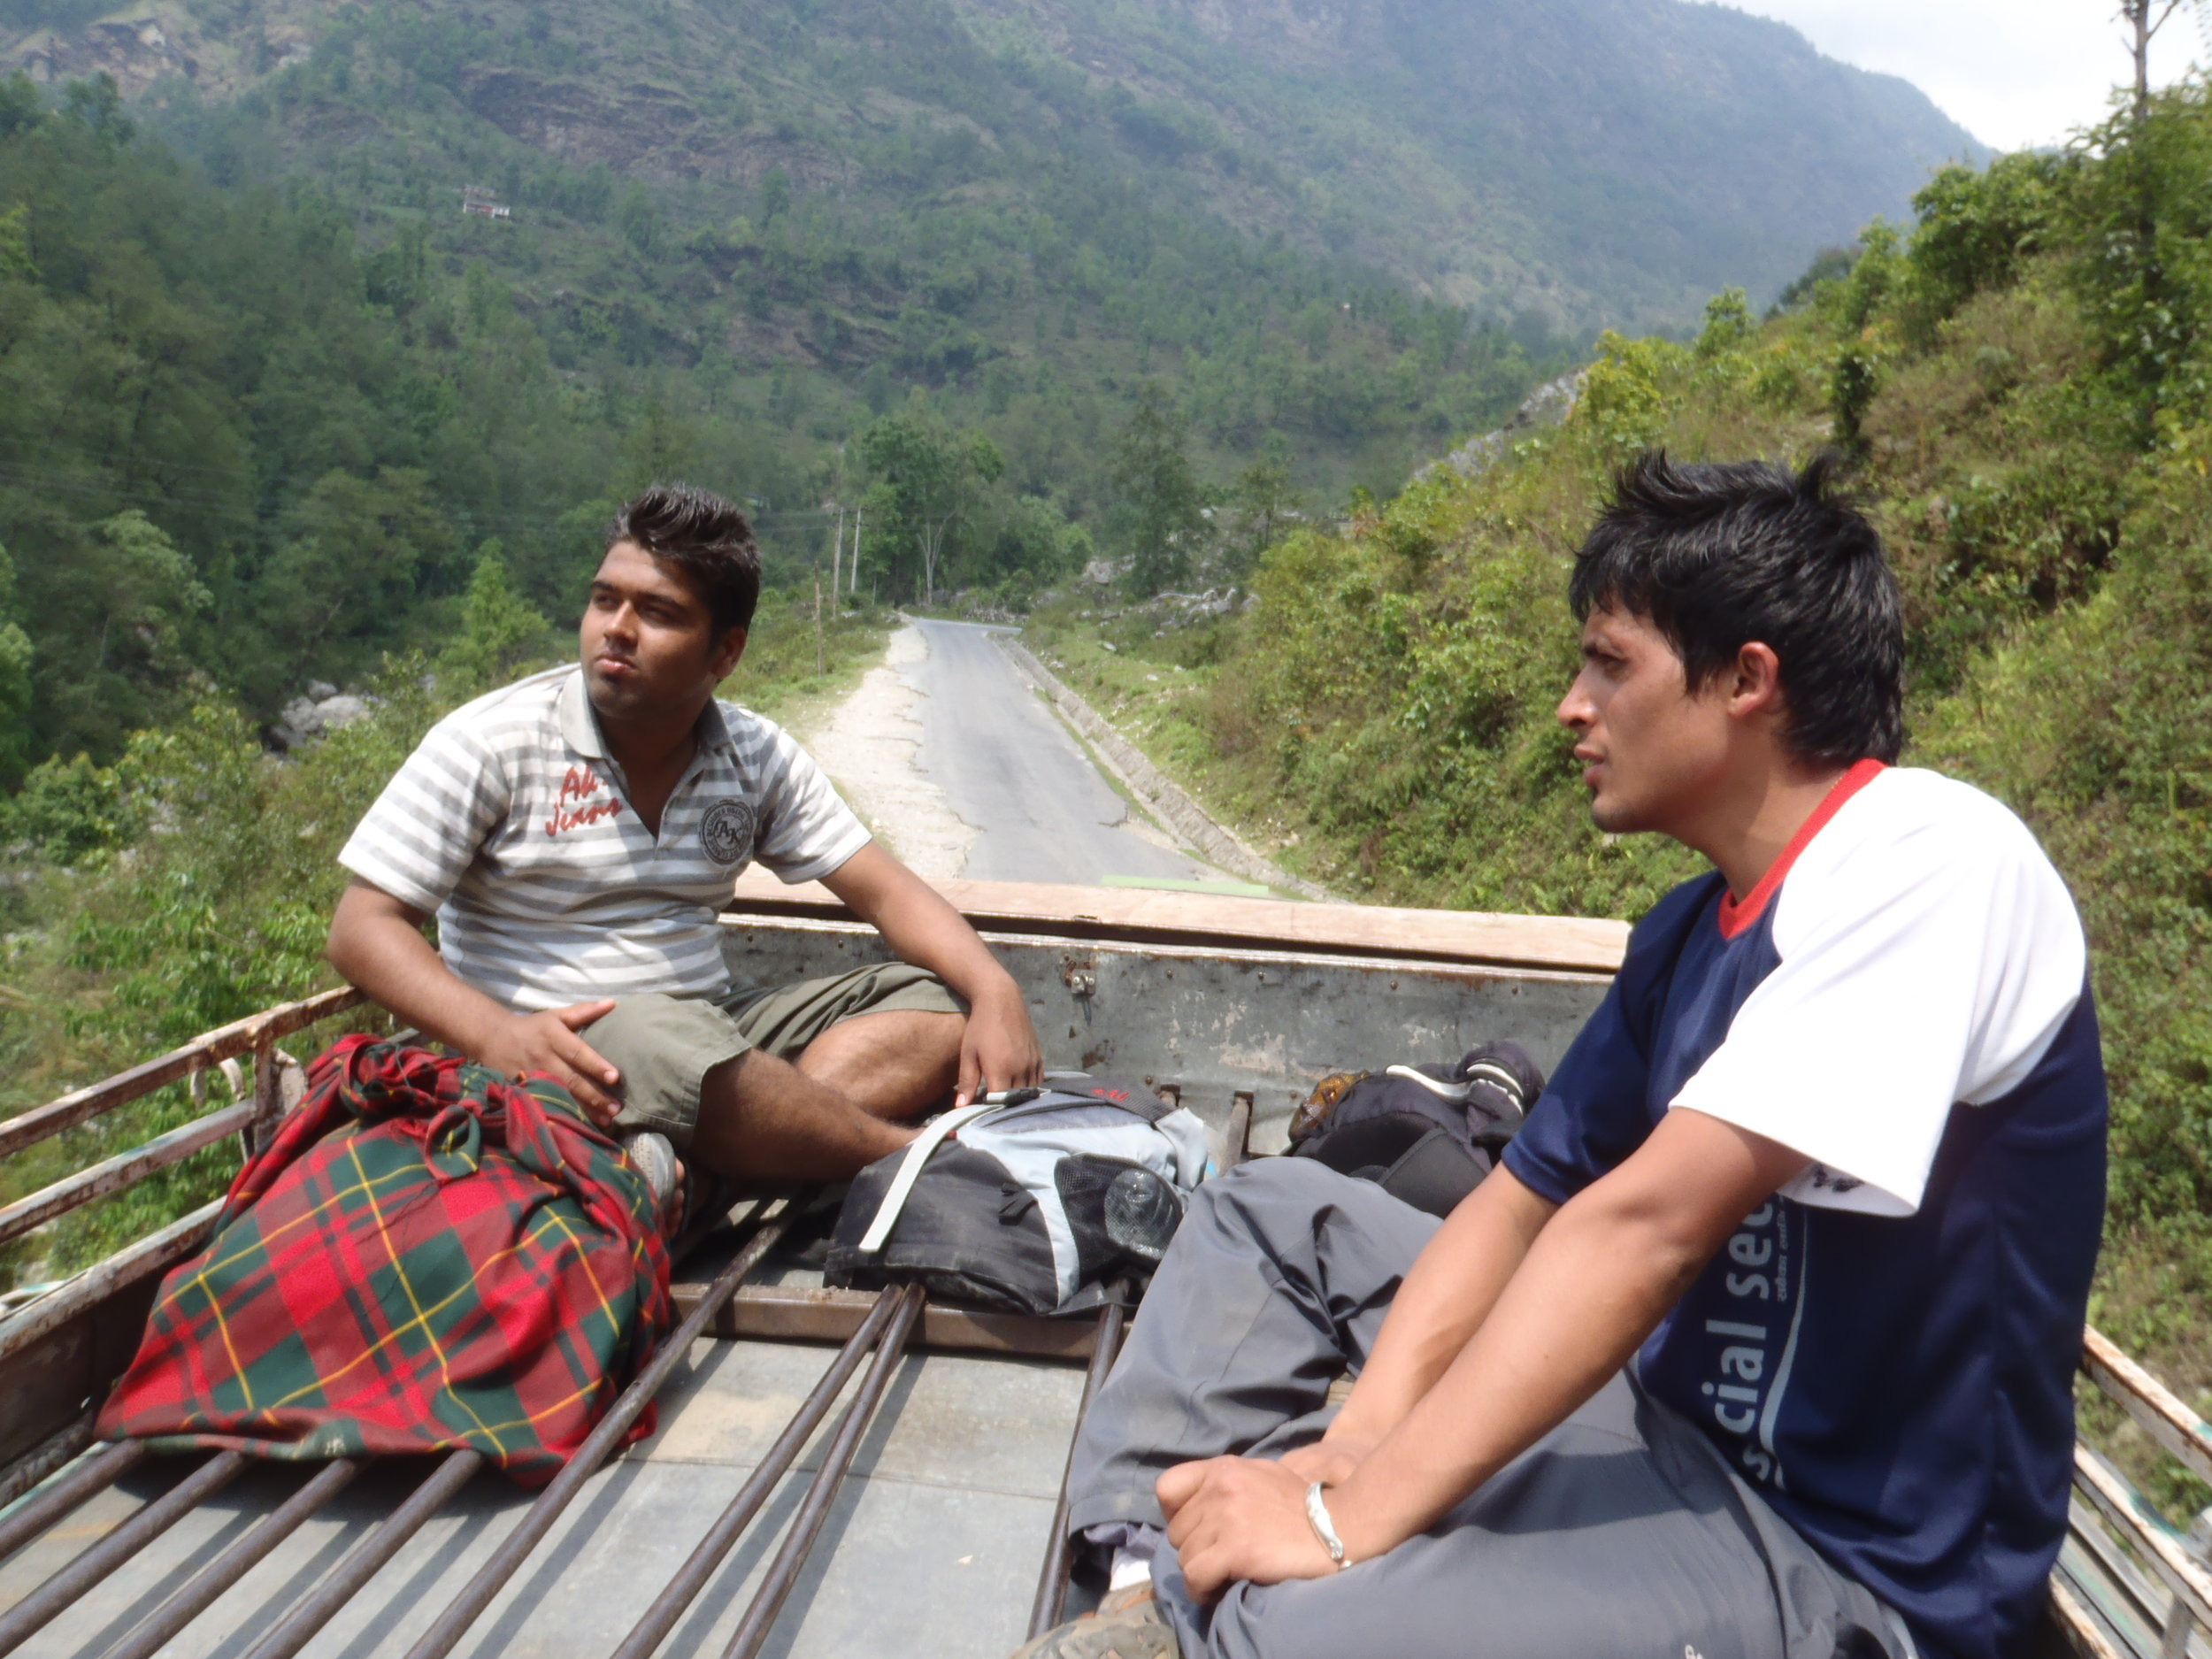 Chilling on the roof of a bus bound to Pokhara